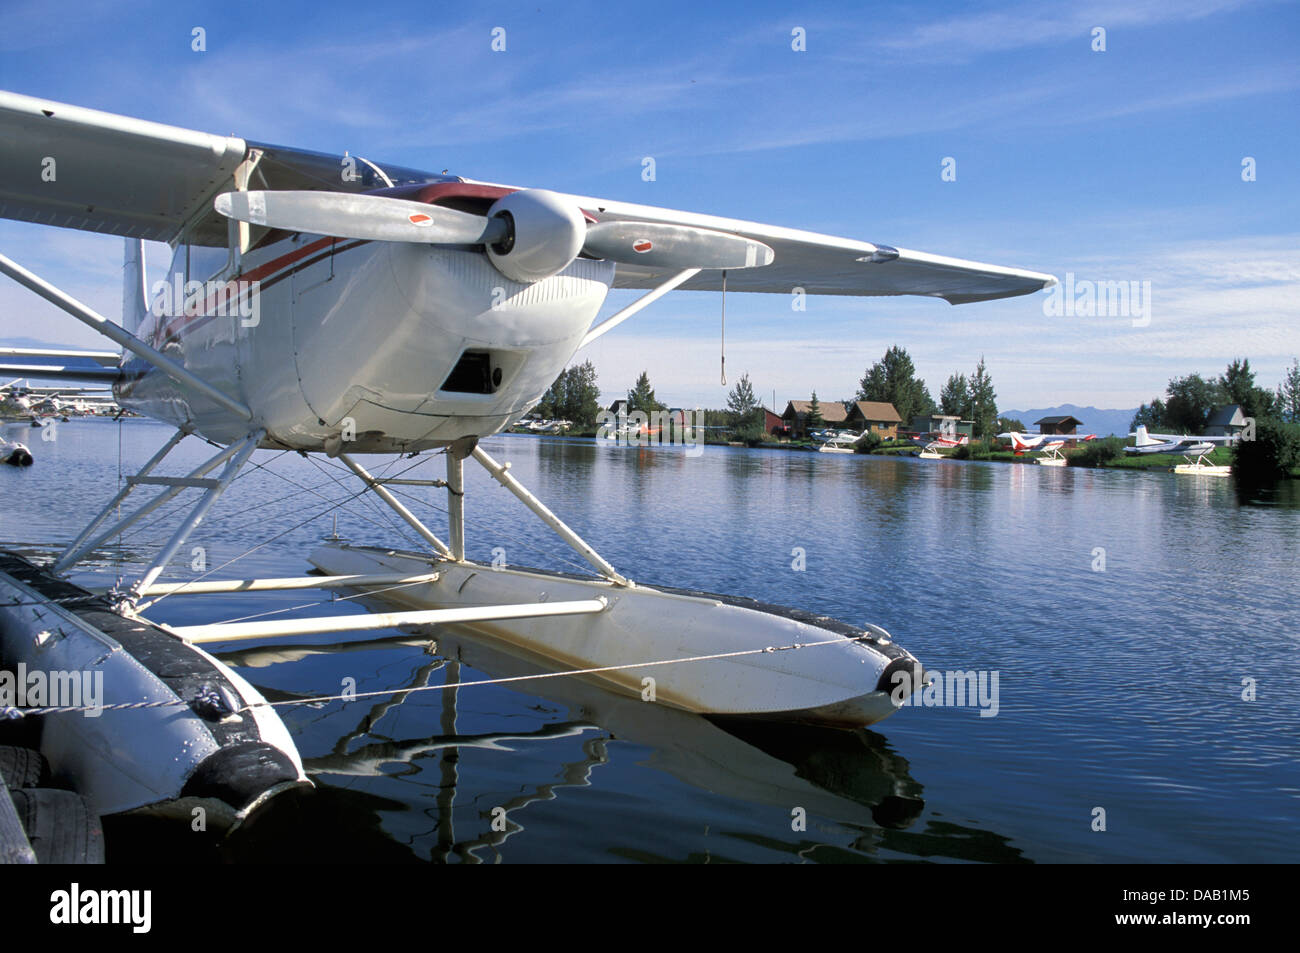 Lake Hood, Seaplane, Hub, Anchorage, Alaska, USA, plane, water, sunshine, bay, fly, aerial, floatplane, prop, propeller - Stock Image